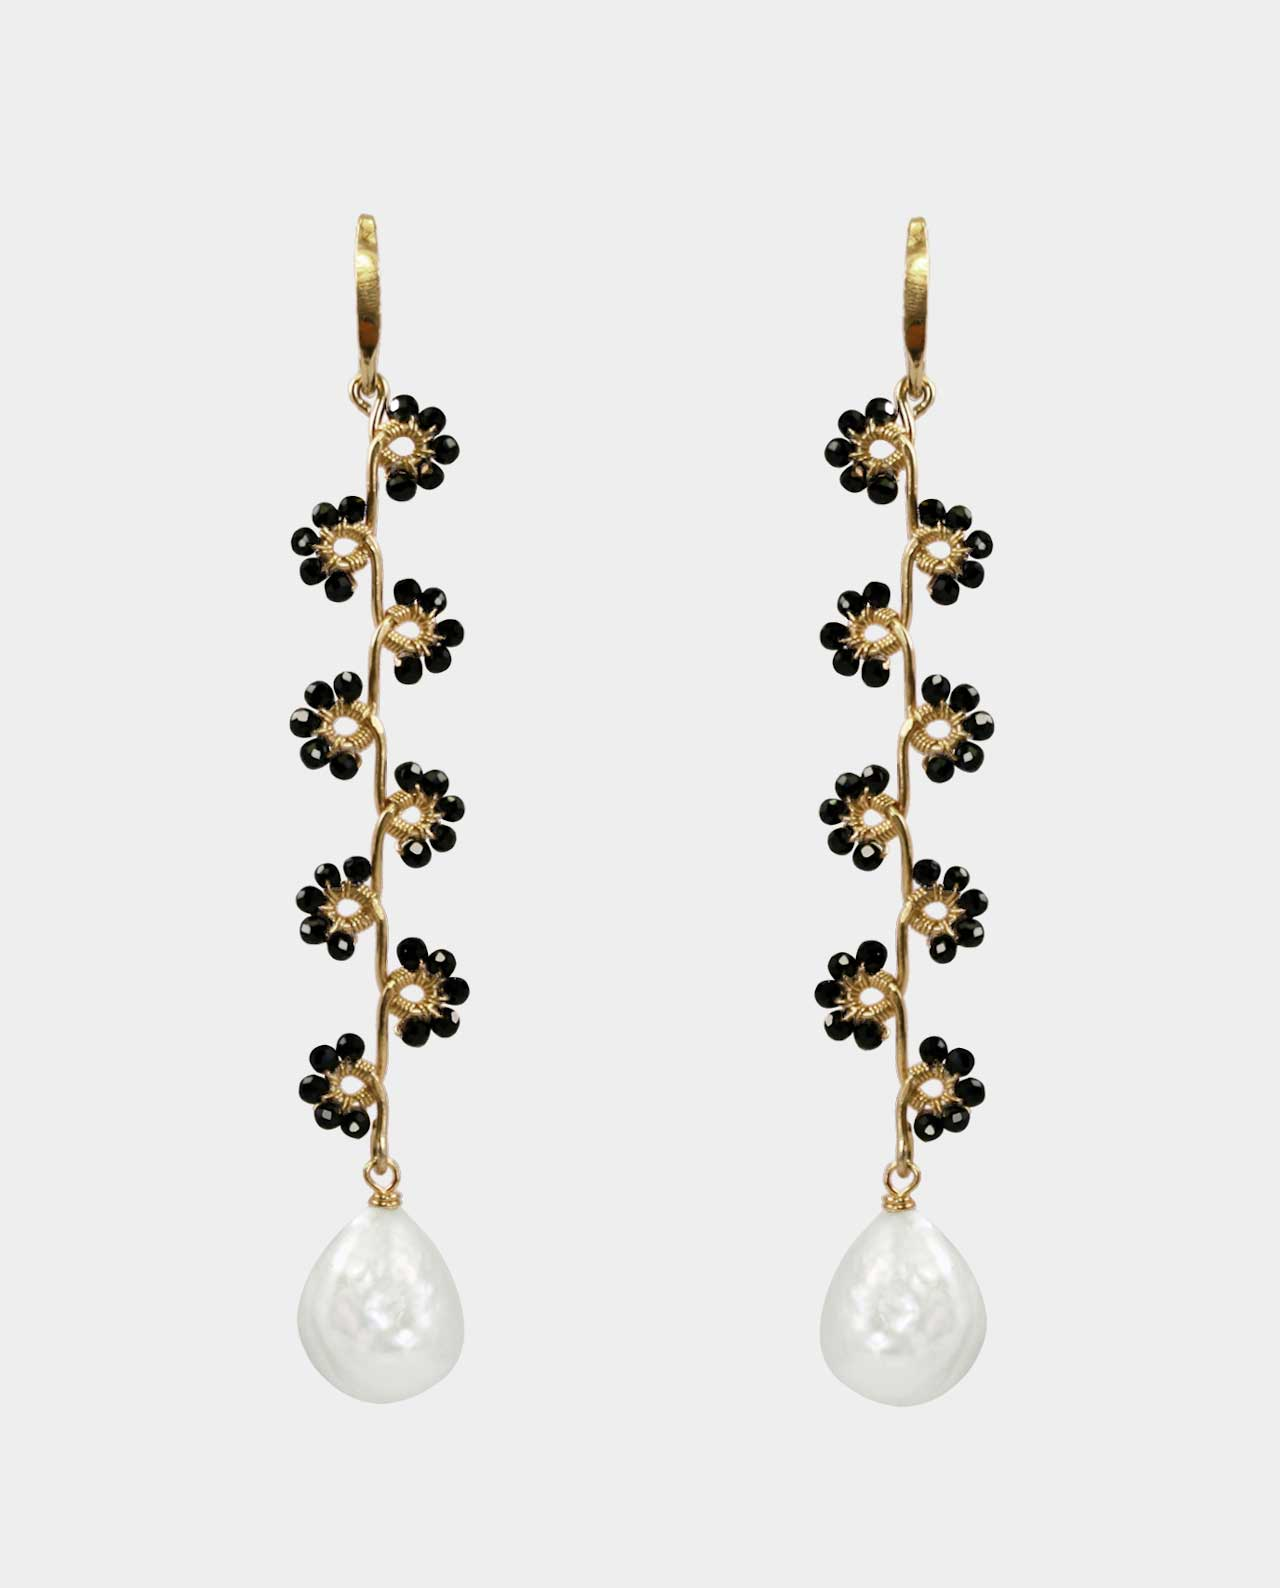 The earrings' flowers of black spinel is a jewelry set that becomes one with the wearer by virtue of the sculptural and organic shape of the earrings as a modern way of designing jewelry